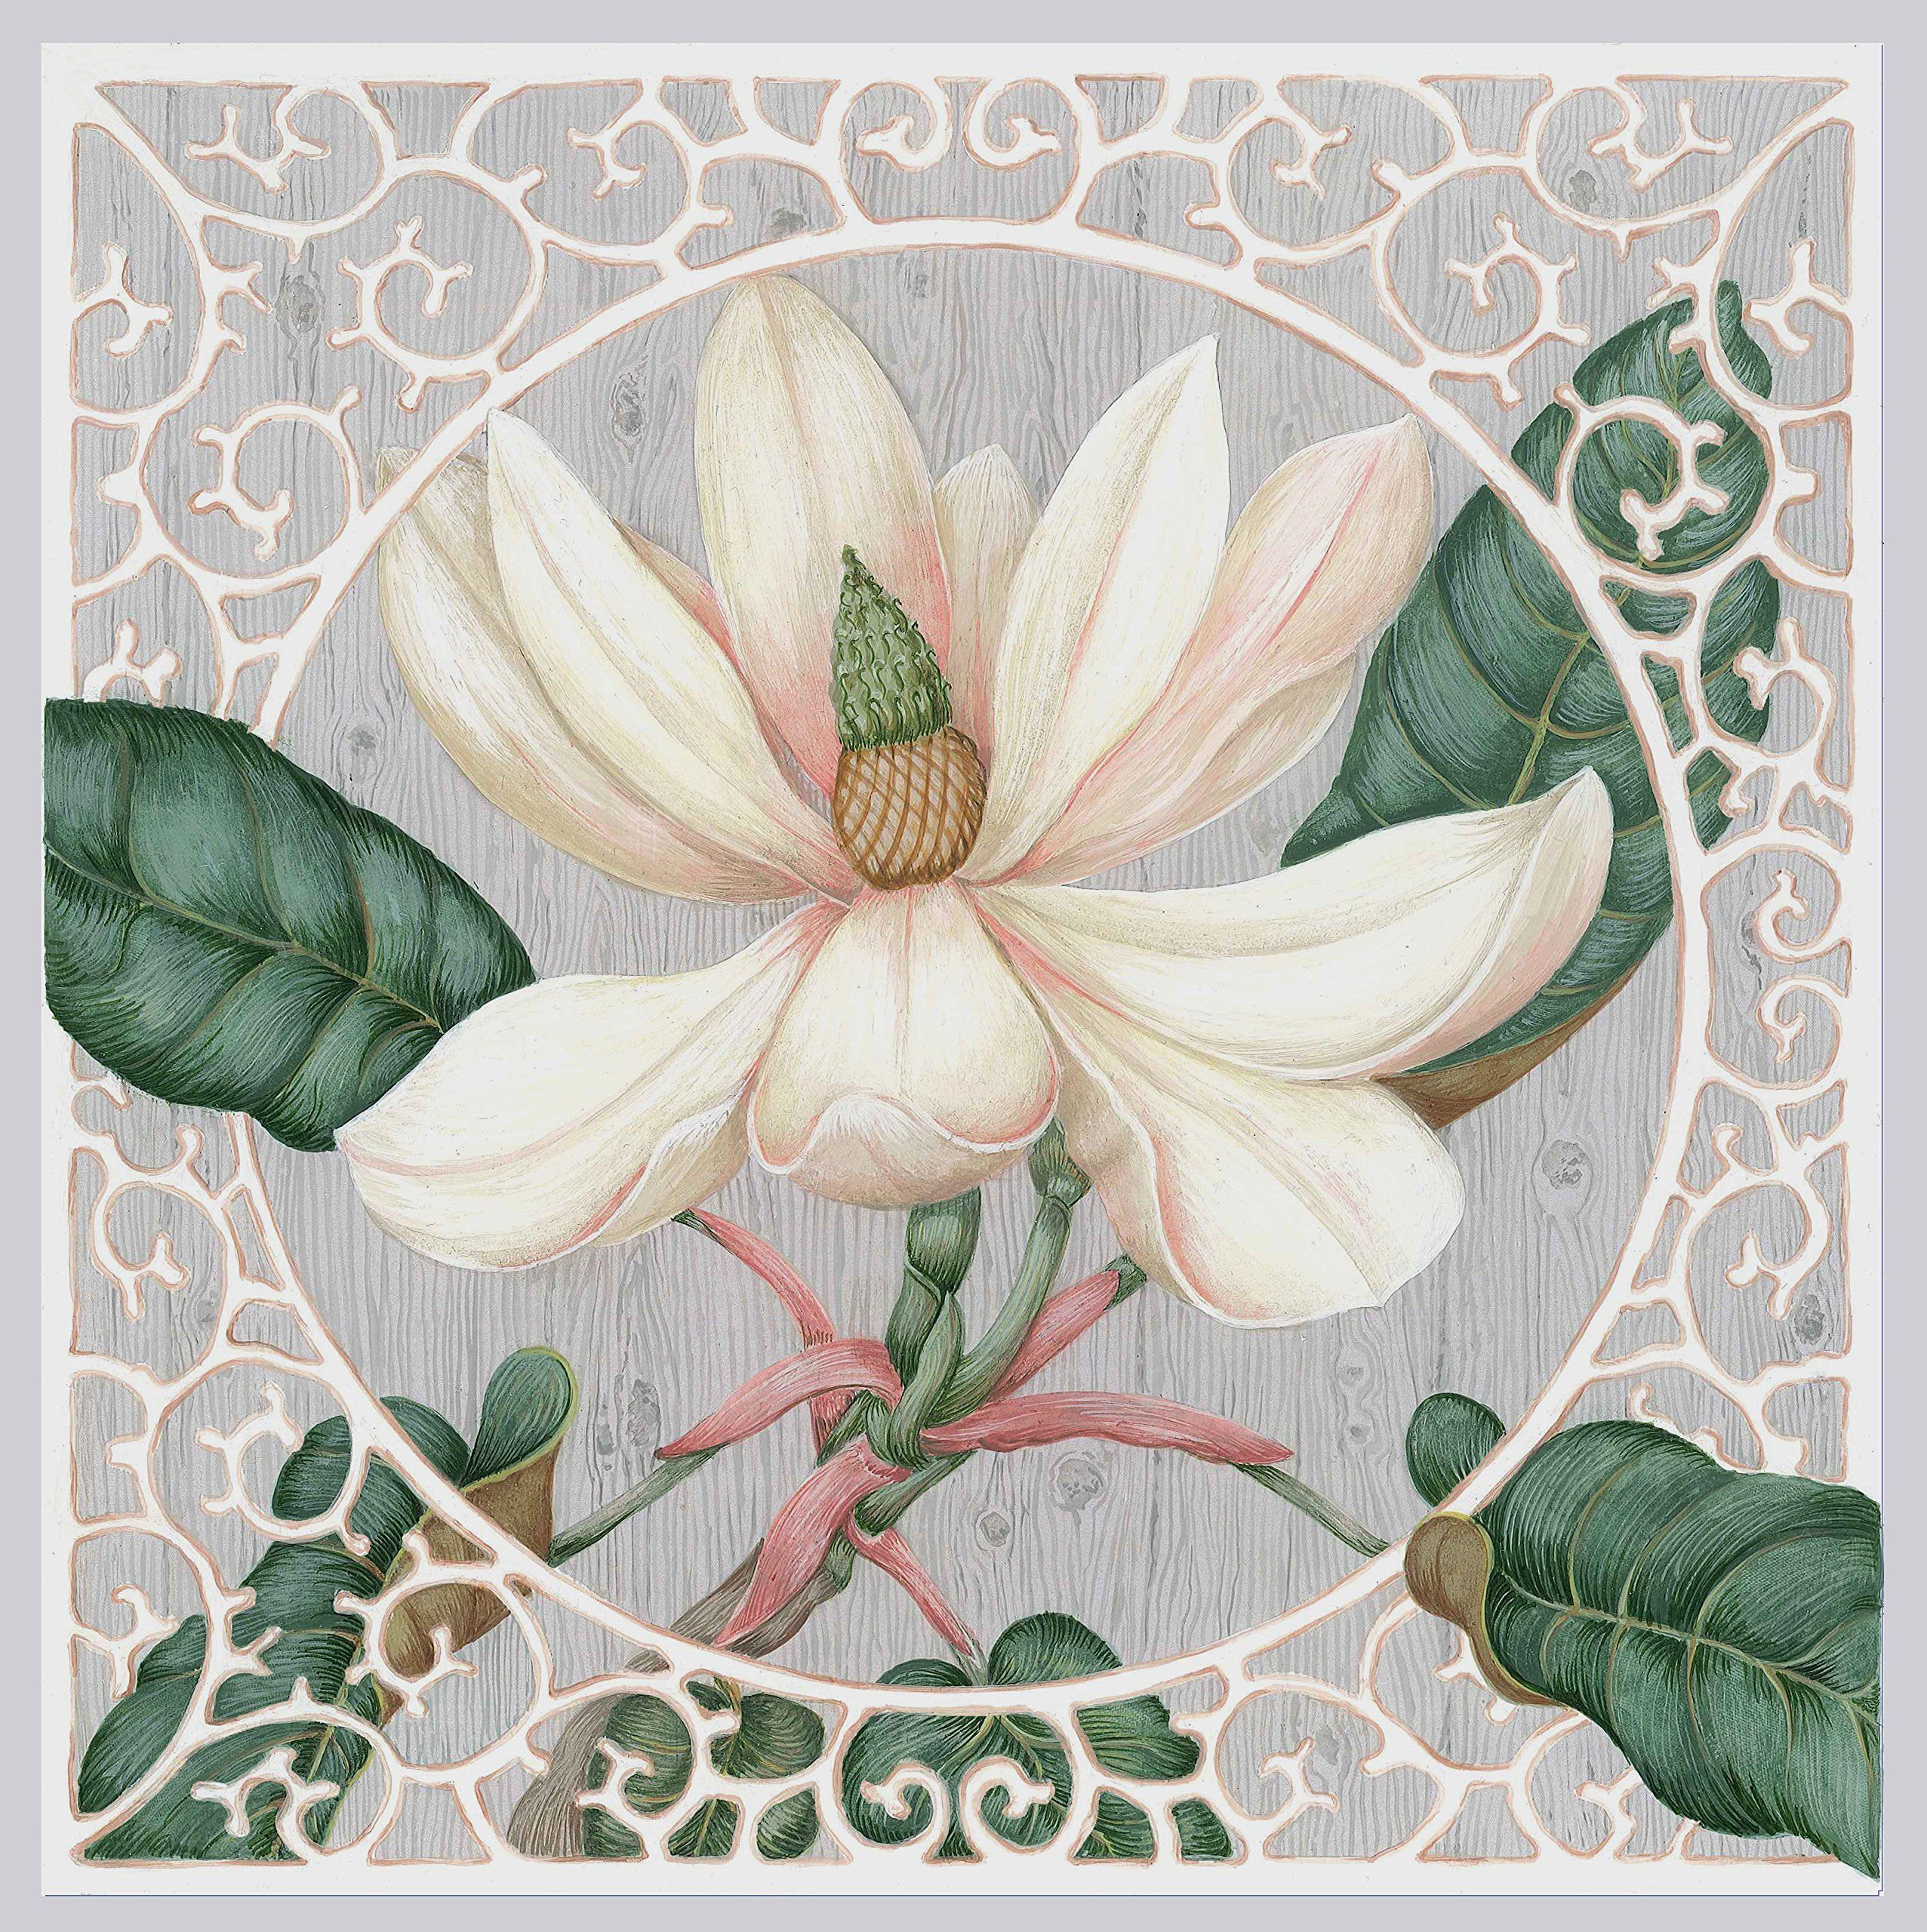 TROMPE L'OEIL BOTANICAL - MAGNOLIA - 48 inches Square. From an original painting by CHUCK FISCHER, this beautiful signed botanical print of a flowering magnolia is one of three flowers currently available in the TROMPE L'OEIL BOTANICAL SERIES. Printed on fine canvas suitable for mounting or framing. Available in four sizes: 18 - 24 - 36 - 48 inches.